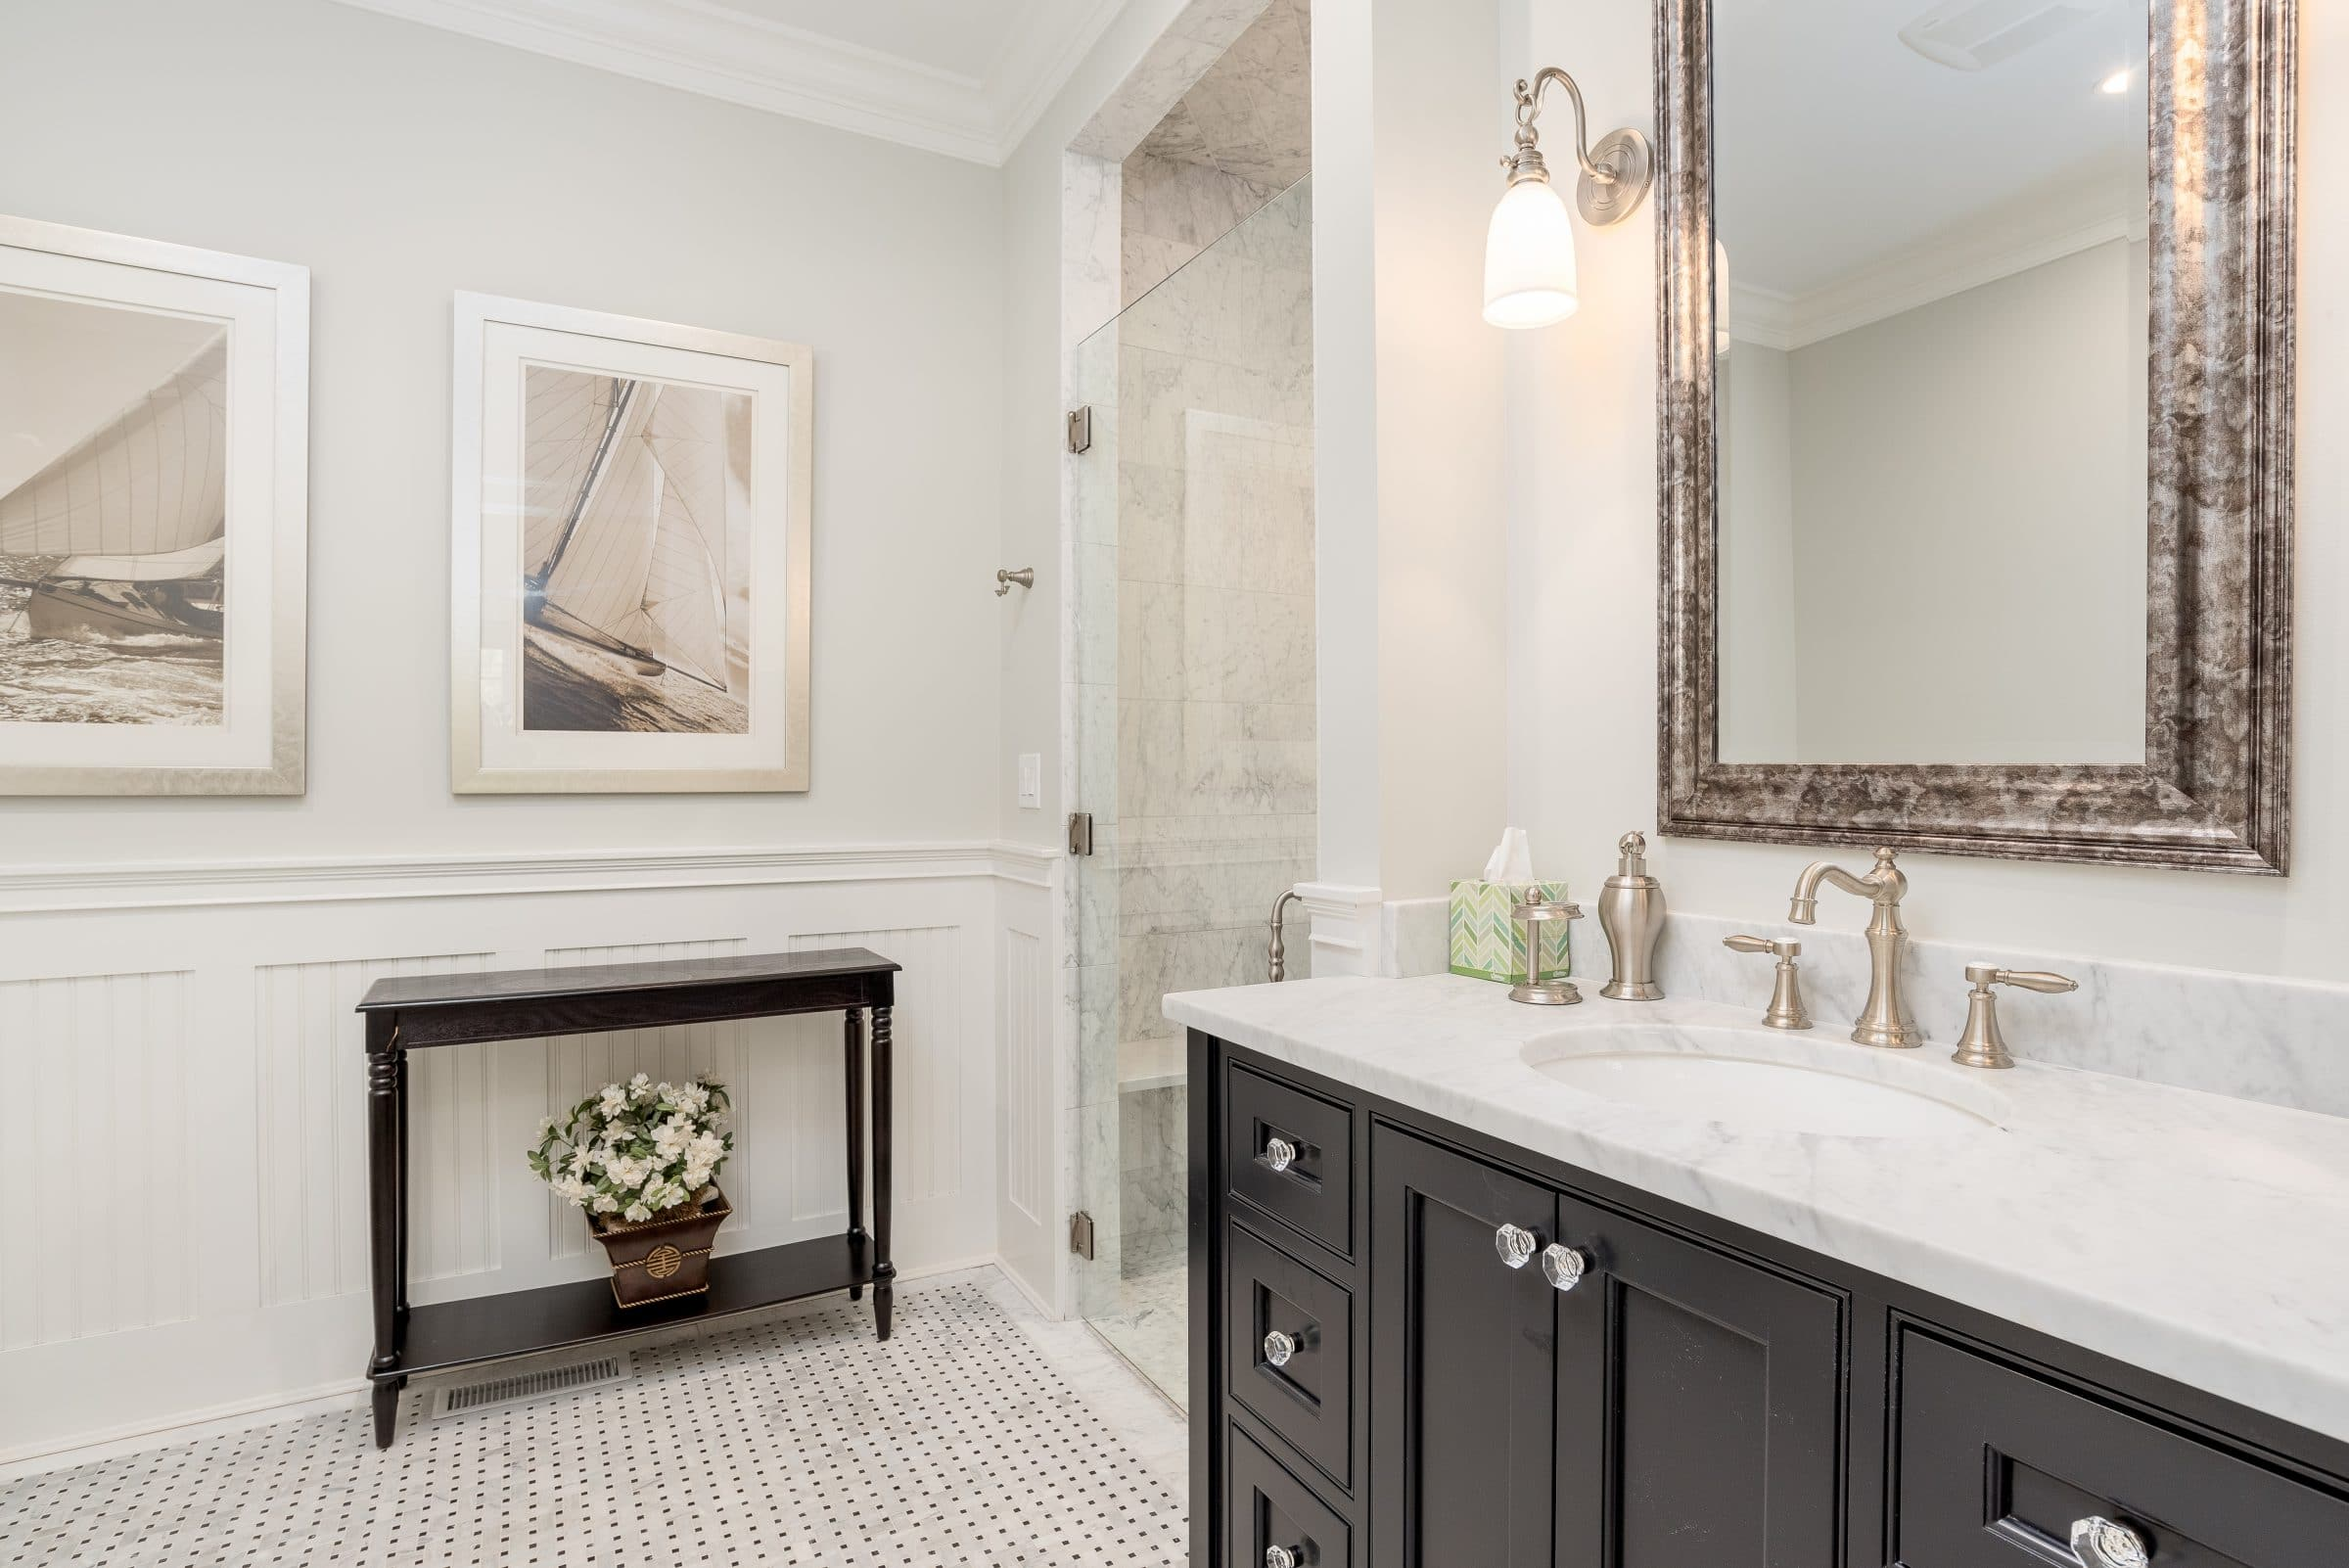 Custom Bathroom Design | New Home Construction CT | Atlas Construction